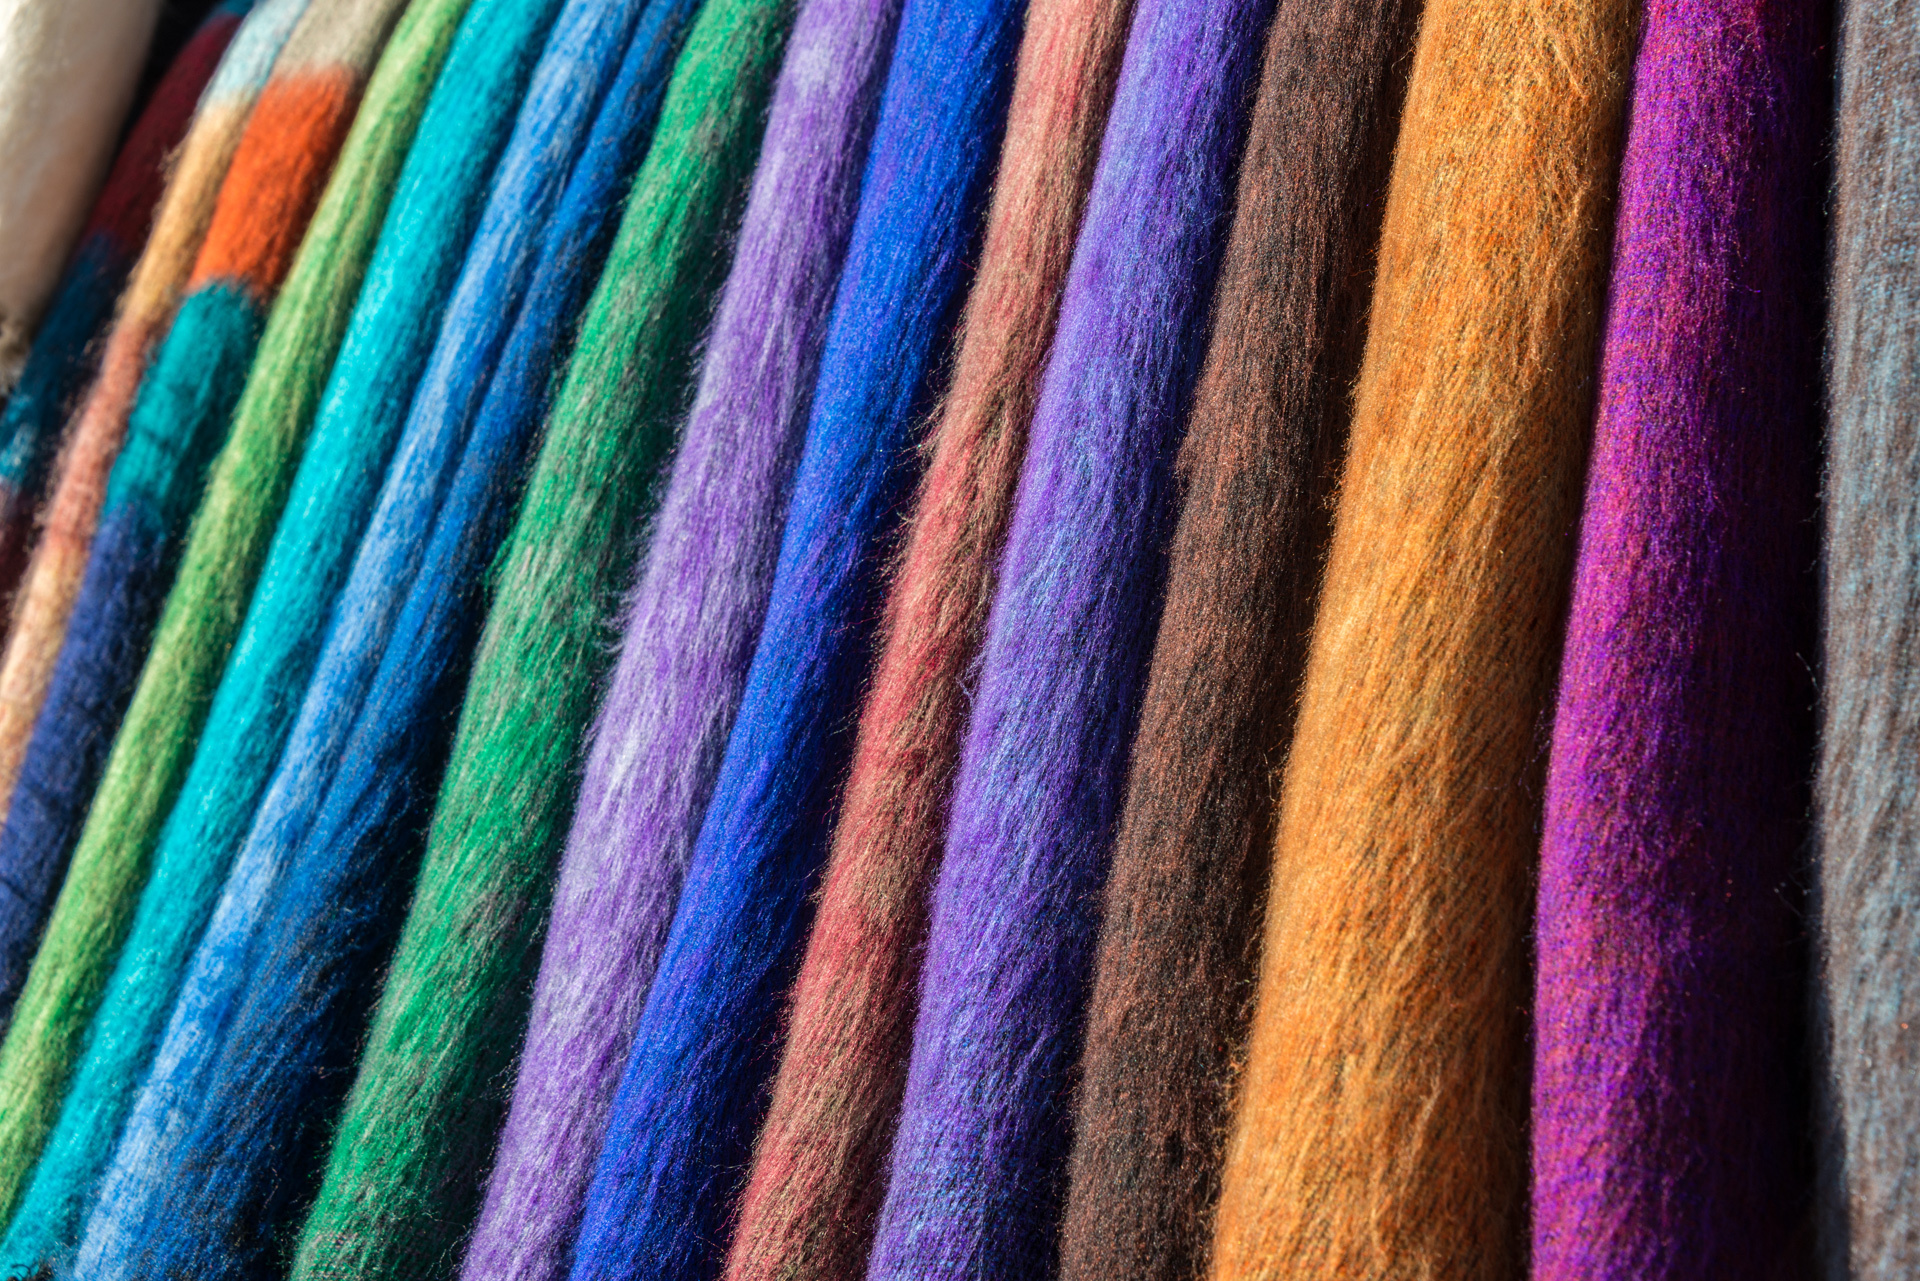 Bolts of Dyed Wool